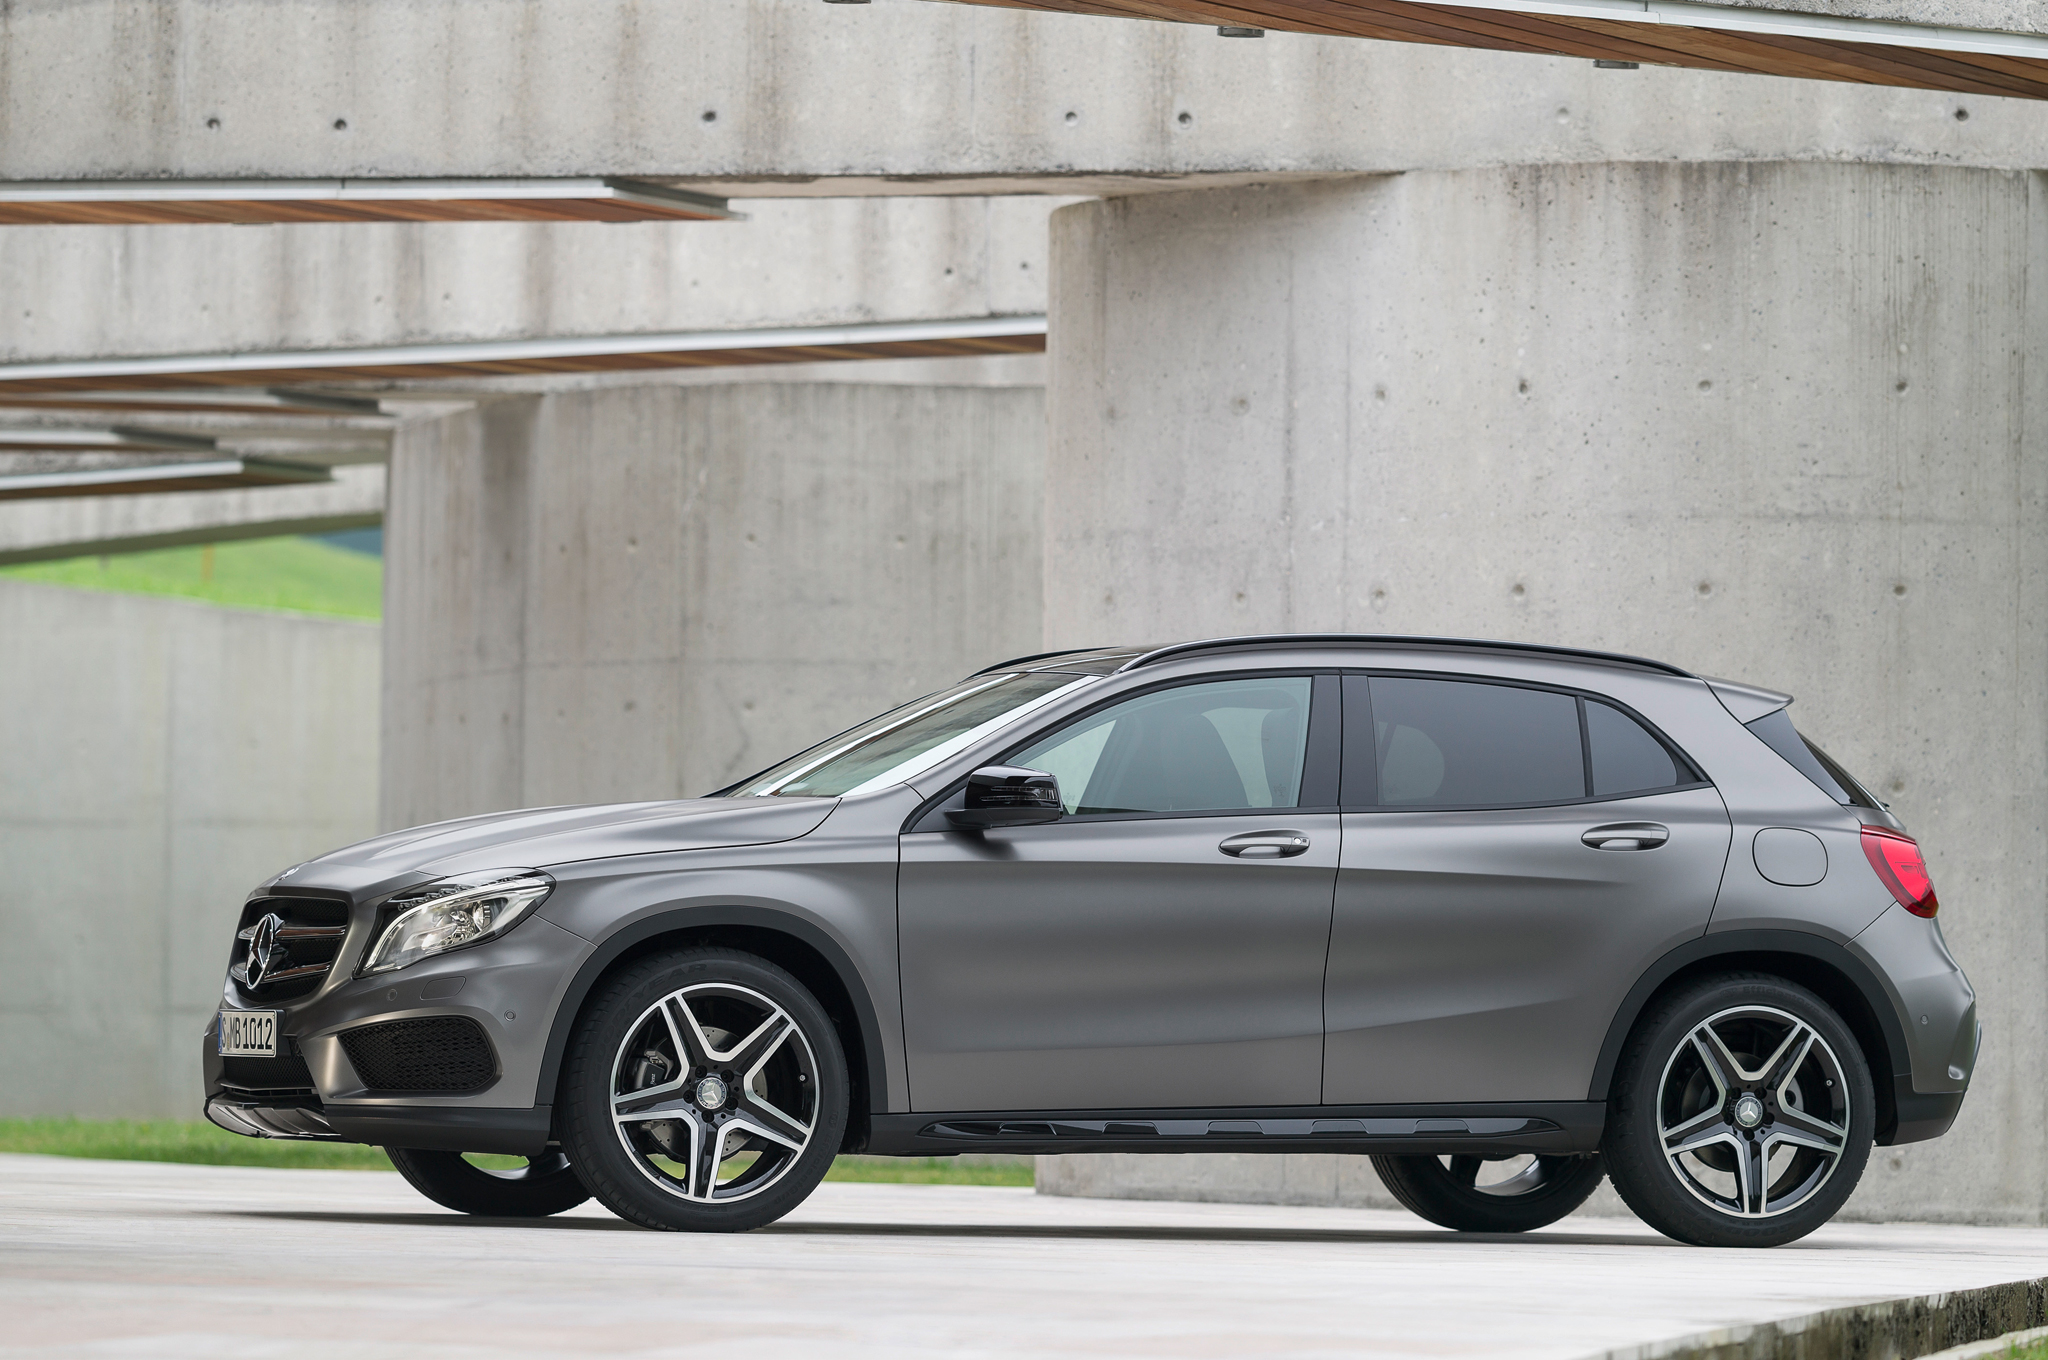 2015 mercedes benz gla 250 4matic design for Mercedes benz gla 250 4matic